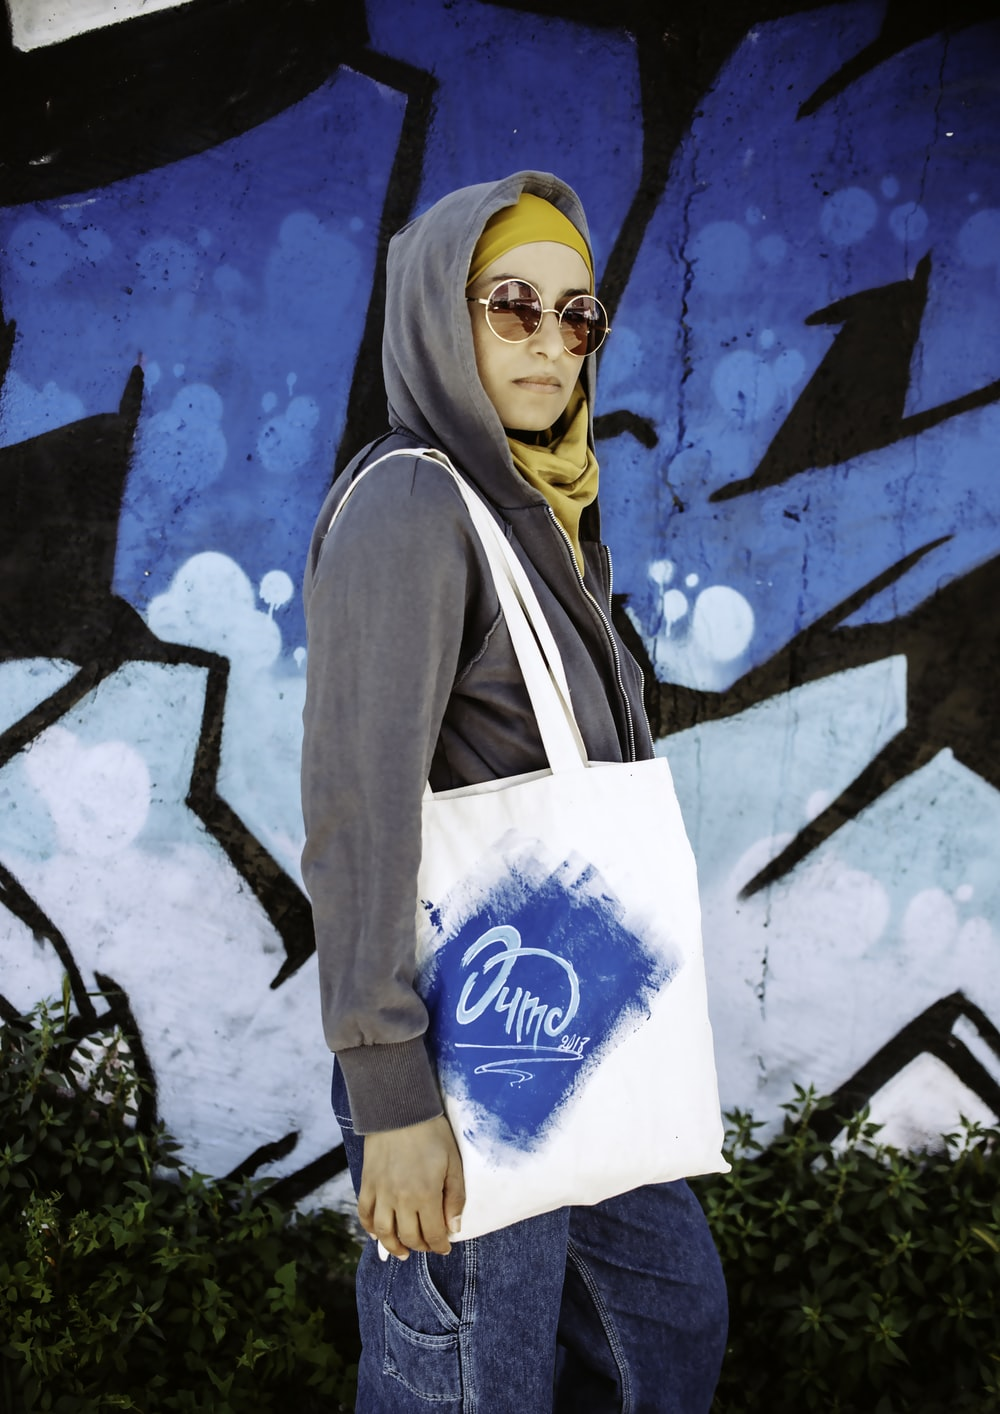 woman wearing grey hoodie carrying white shoulder bag